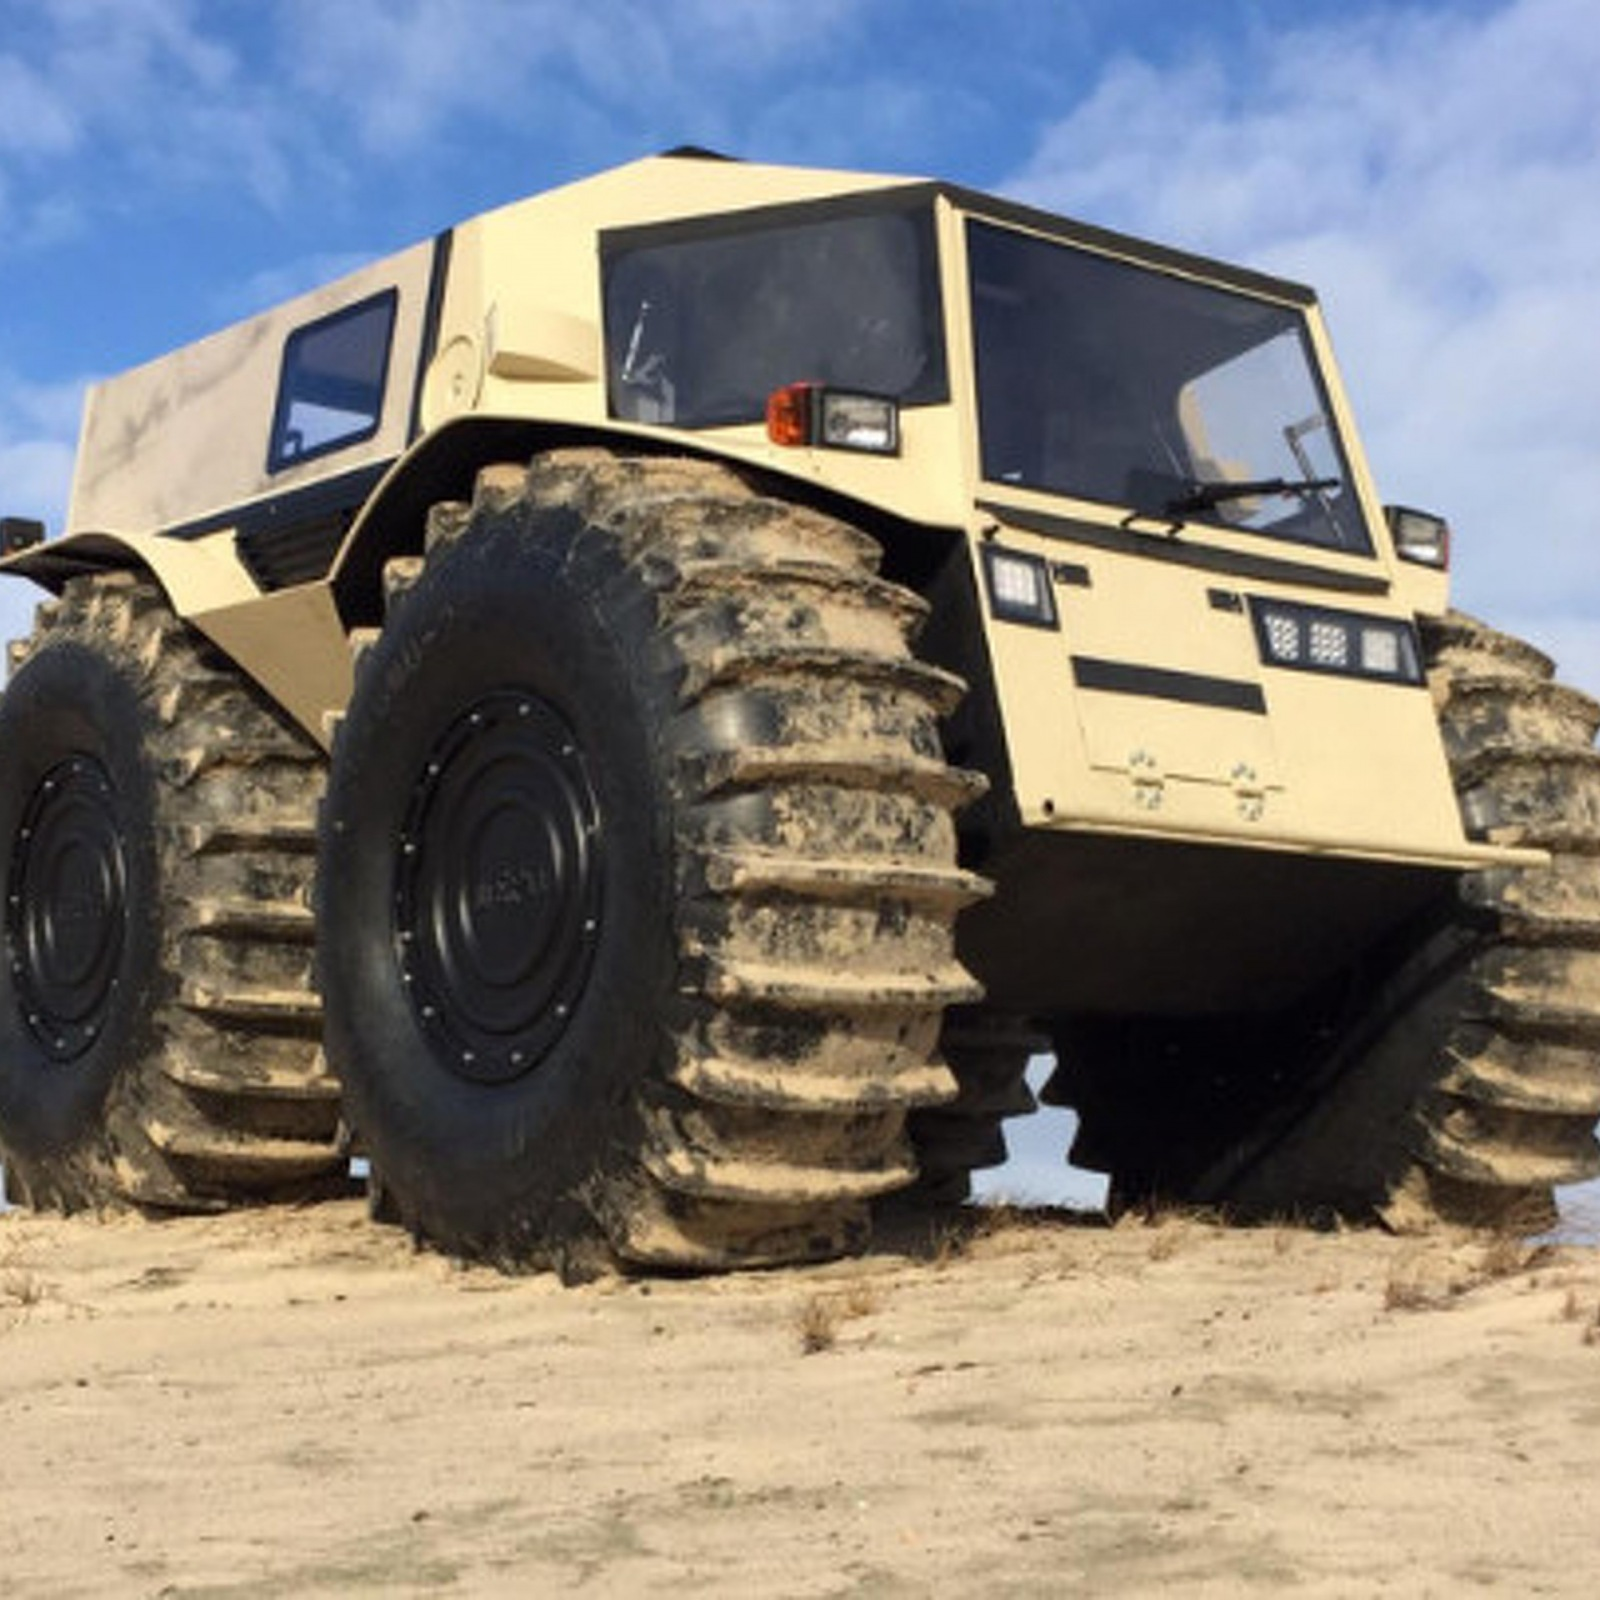 russian-sherp-is-the-ultimate-amphibious-4x4.jpg.ff6960a2c9fdc6bccbb1b22b48617ee1.jpg